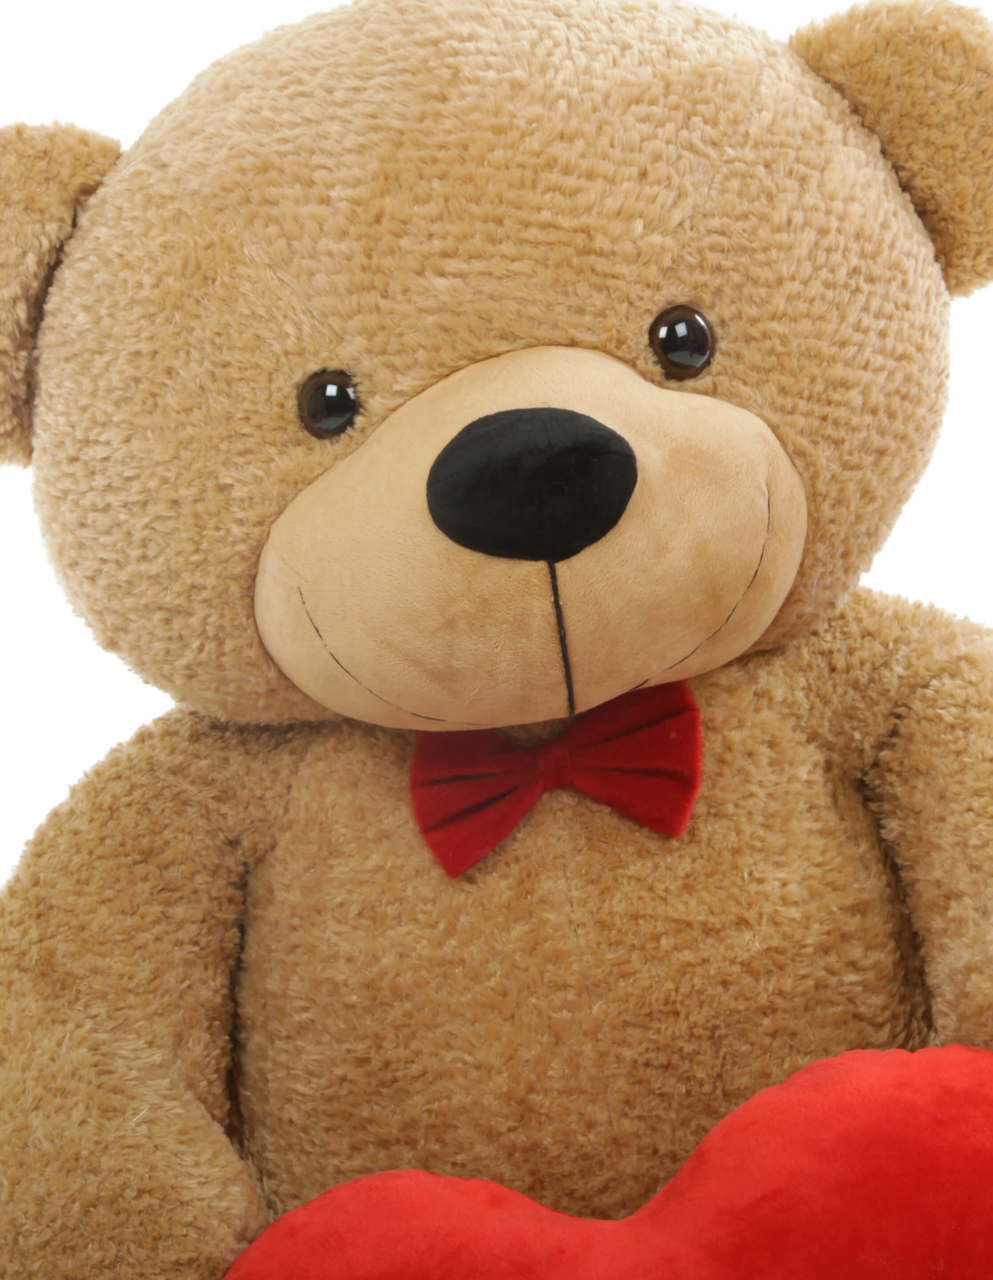 Shaggy L Cuddles Amber Teddy Bear with I Love You Heart 4ft